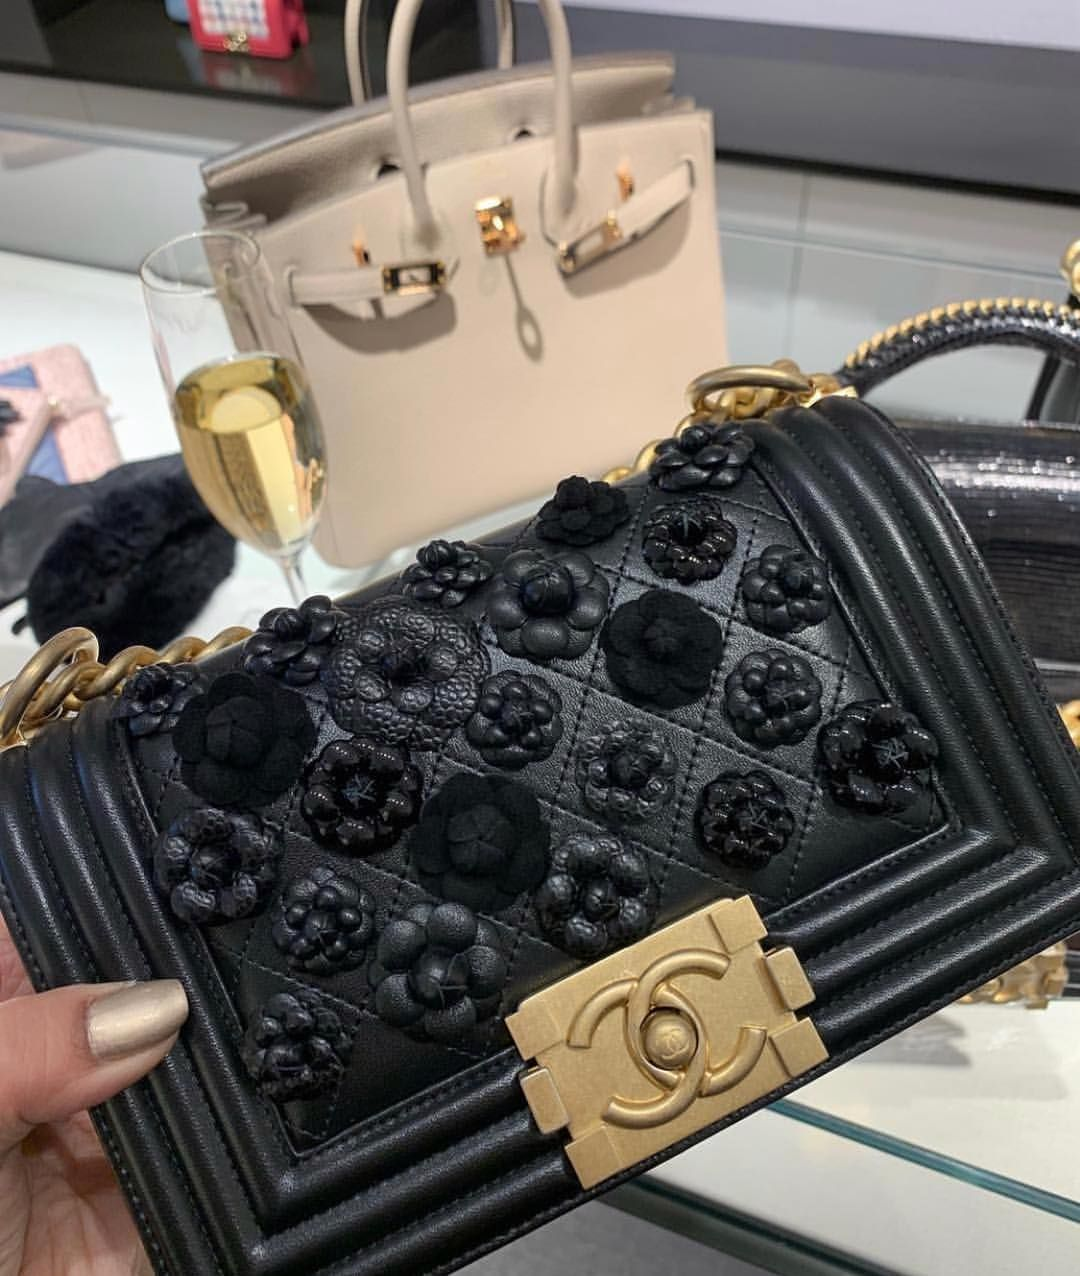 1aea0bcf84  chanel iconic  Boy  shoulder bag in black leather and floral details. At   6